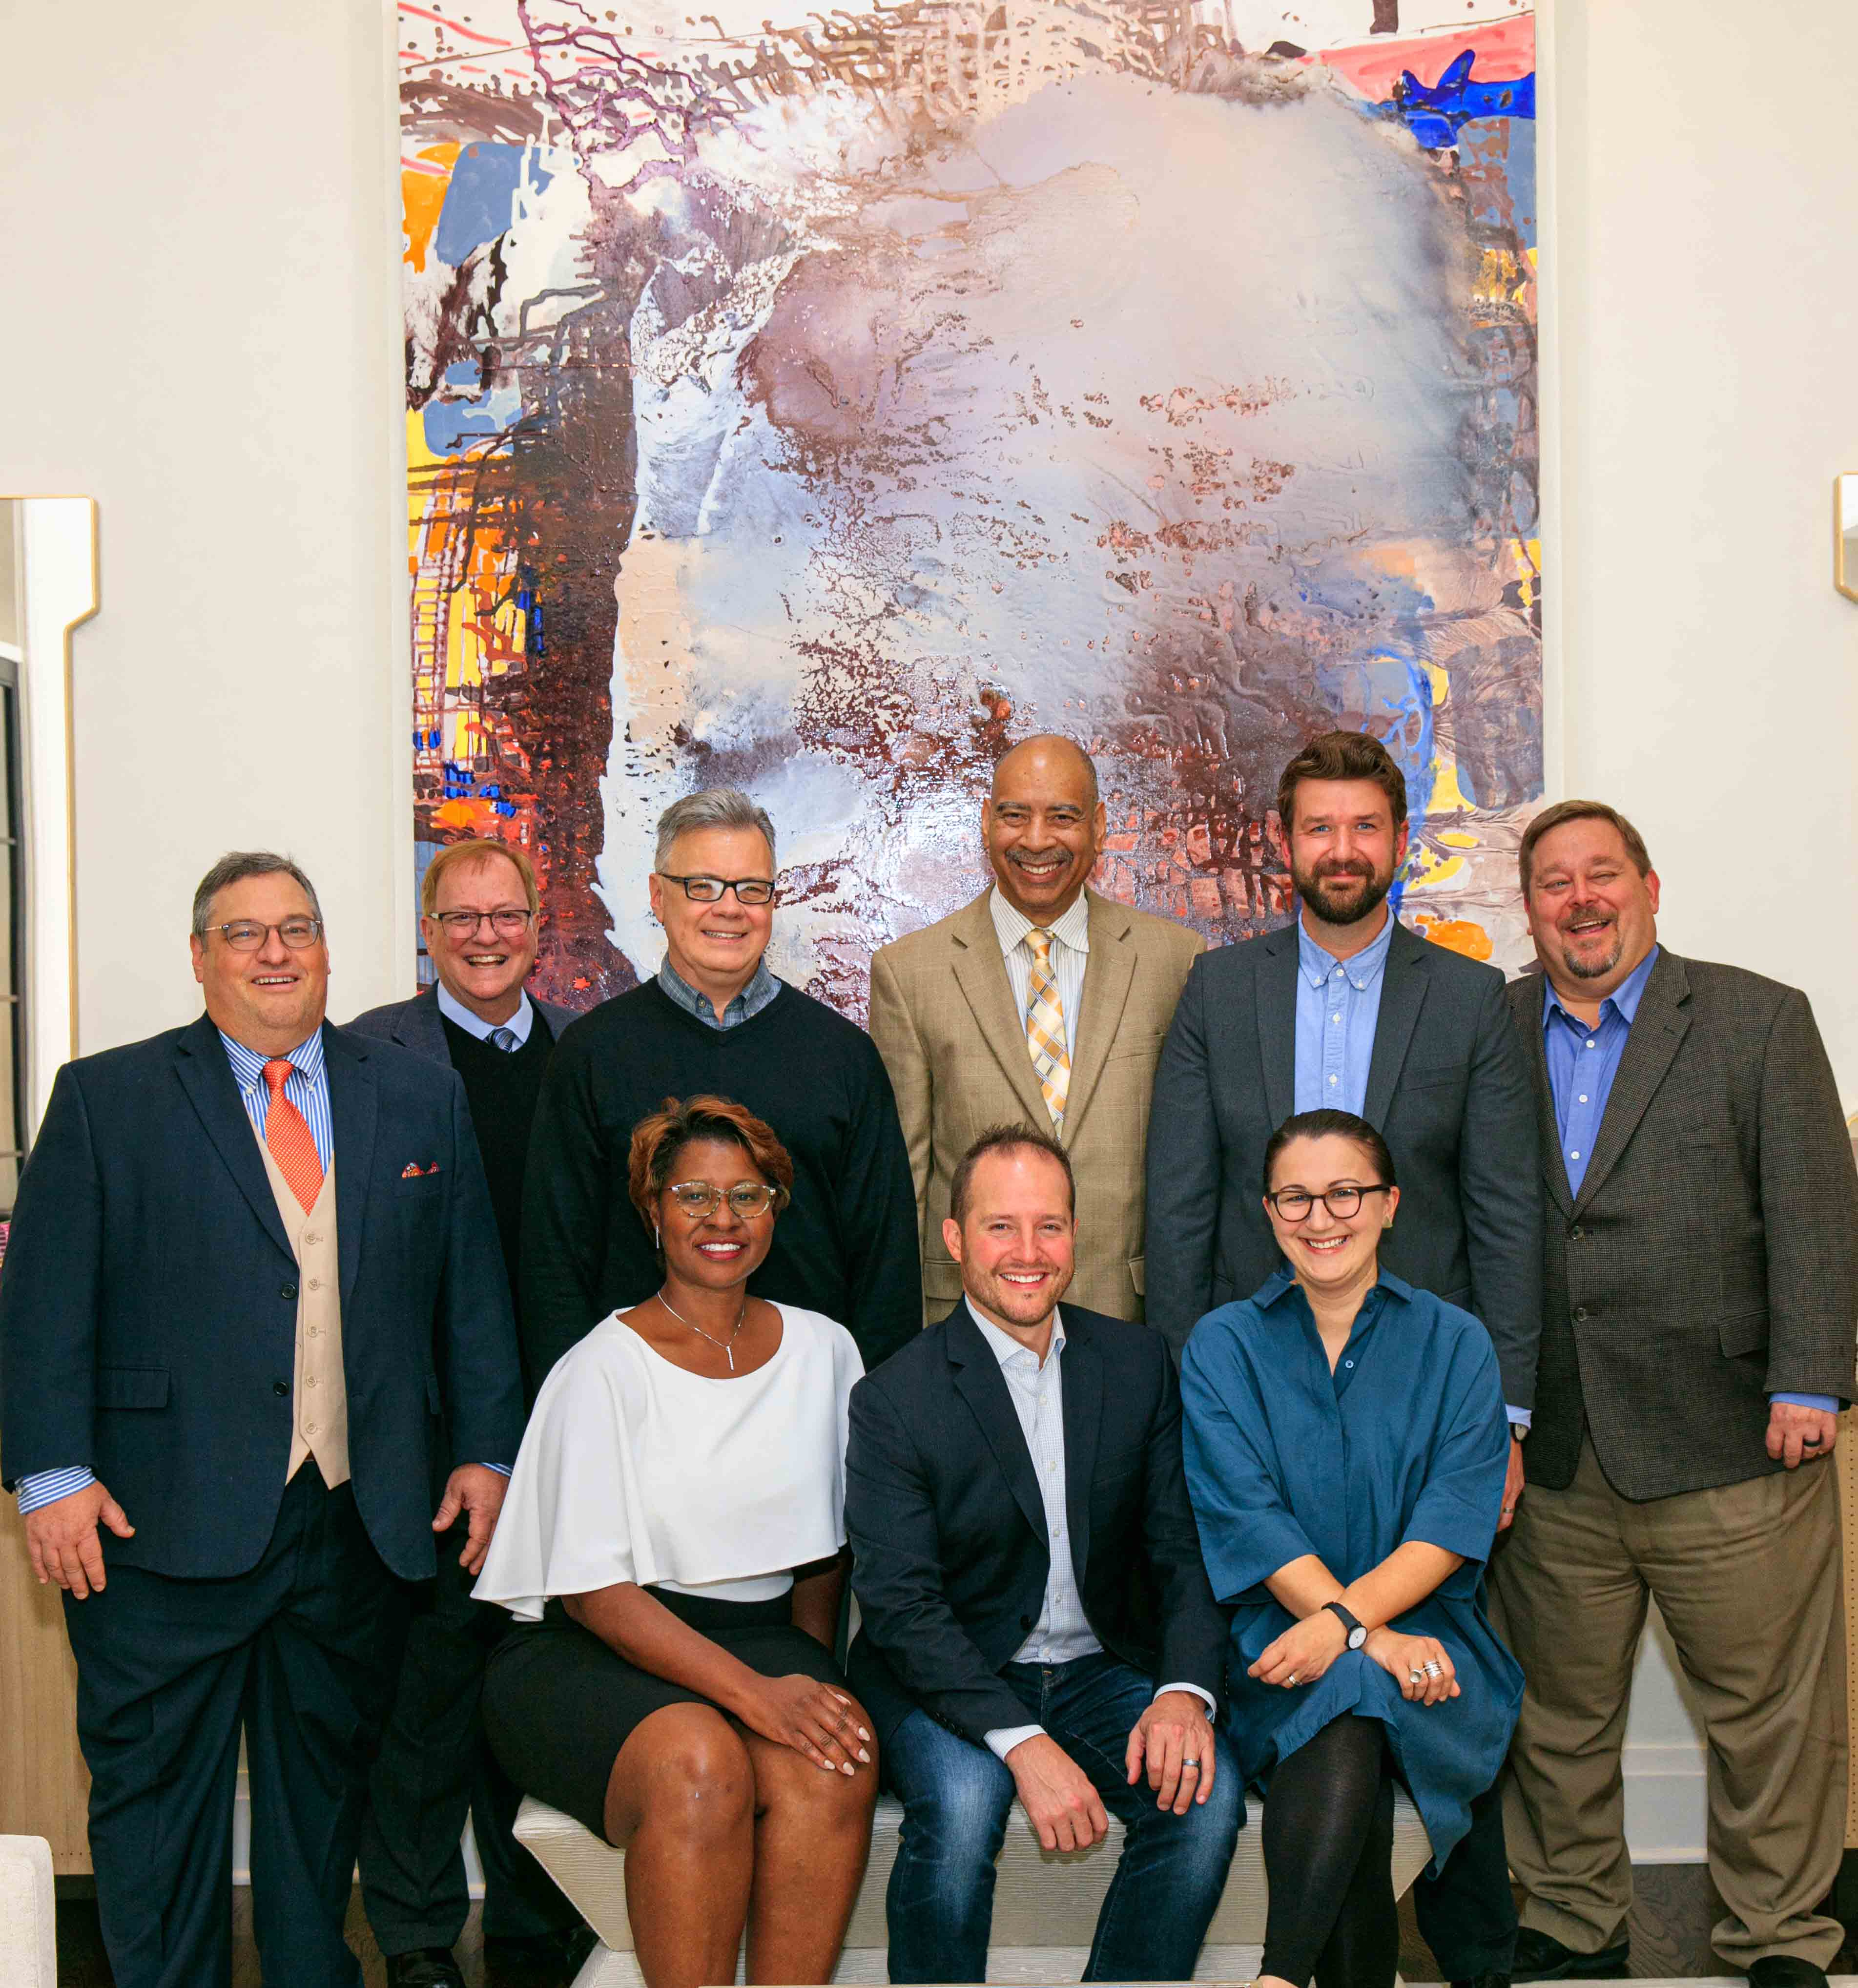 2020 St. Louis Arts Awards honorees